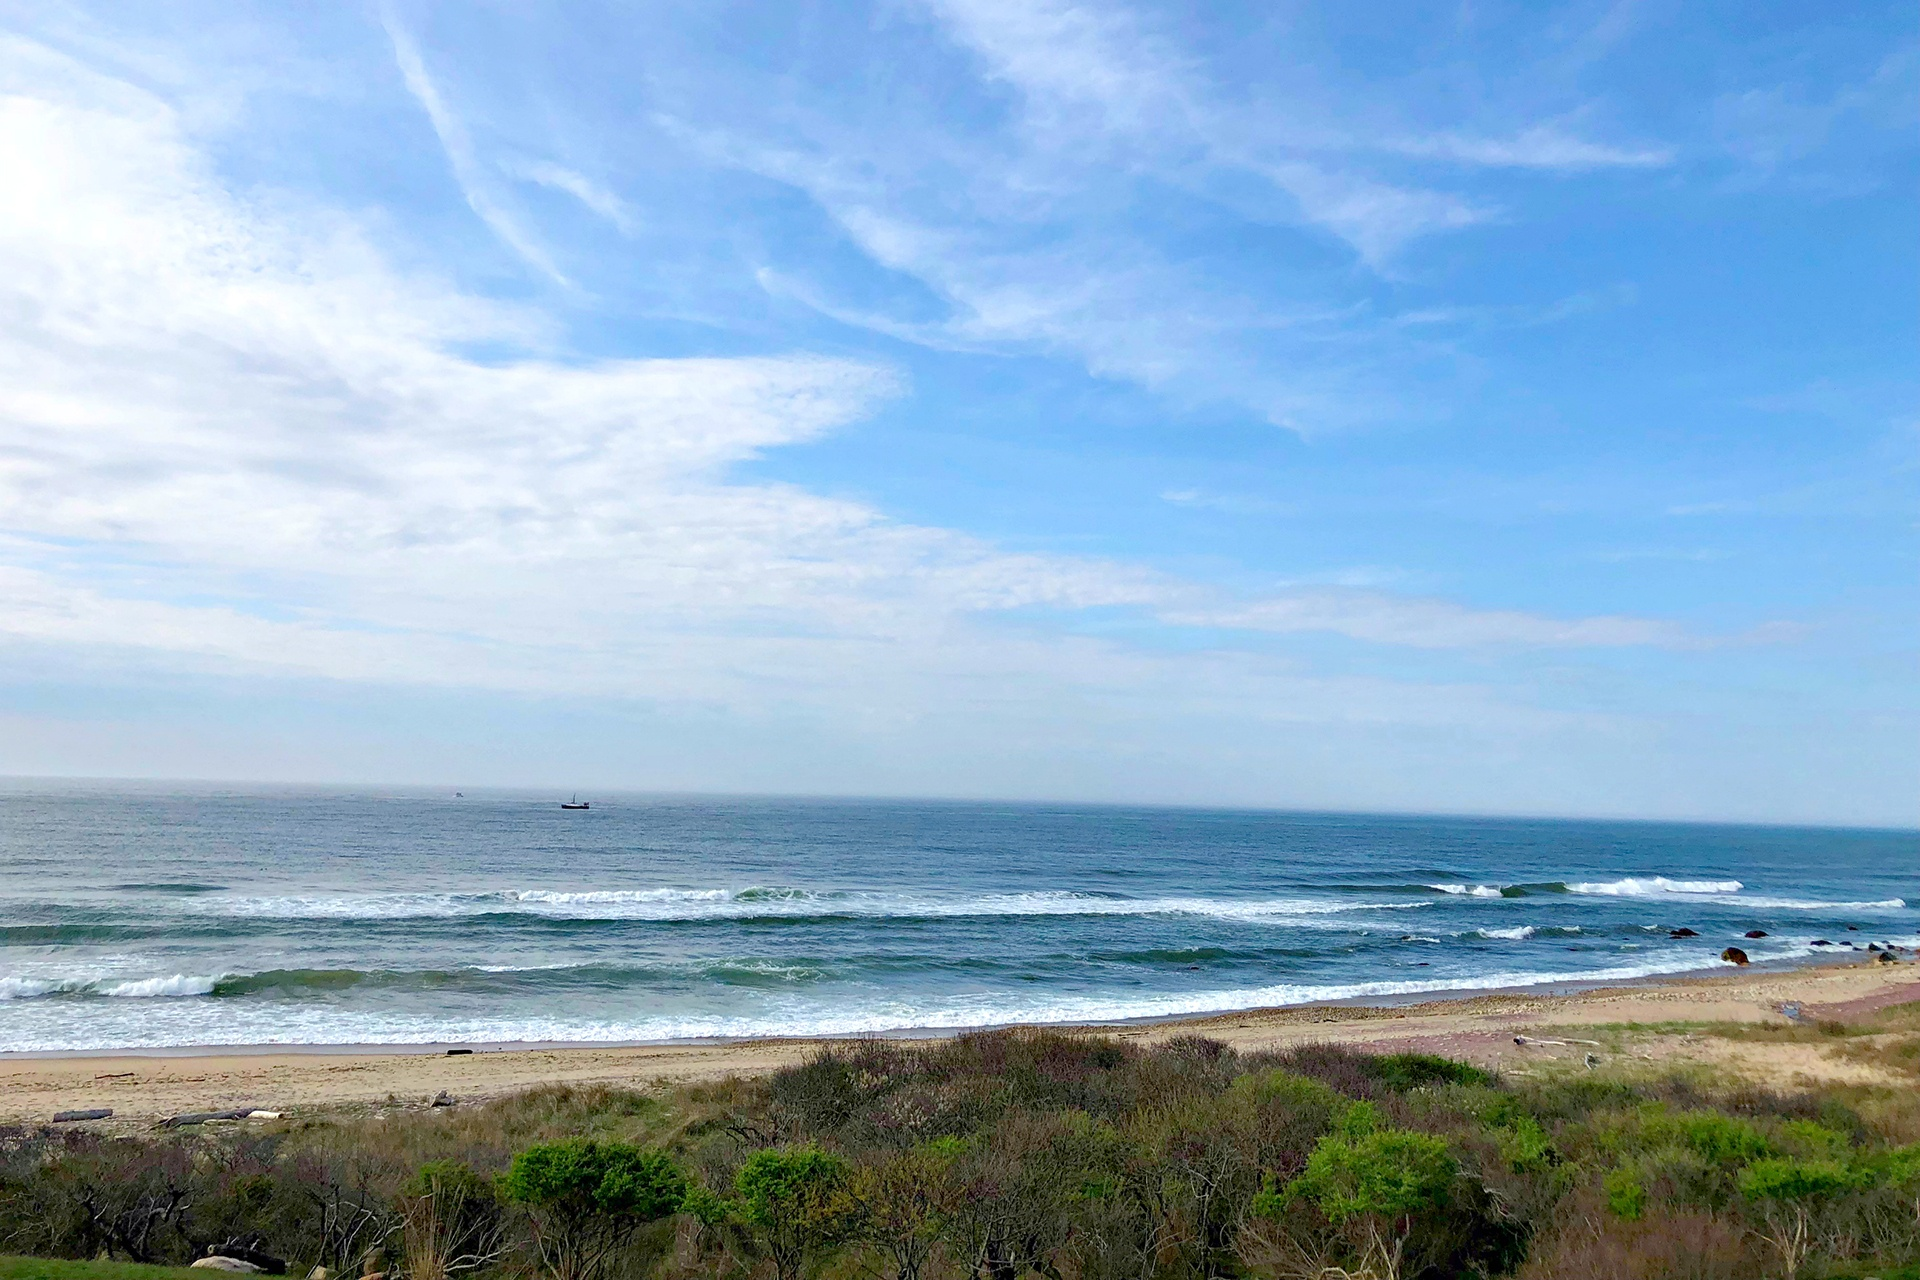 The property has access to world-class surfing and deep-sea fishing, and is close to Montauk Yacht Club, golf courses, riding stables, fine restaurants and shops, wineries, and Montauk regional airport.